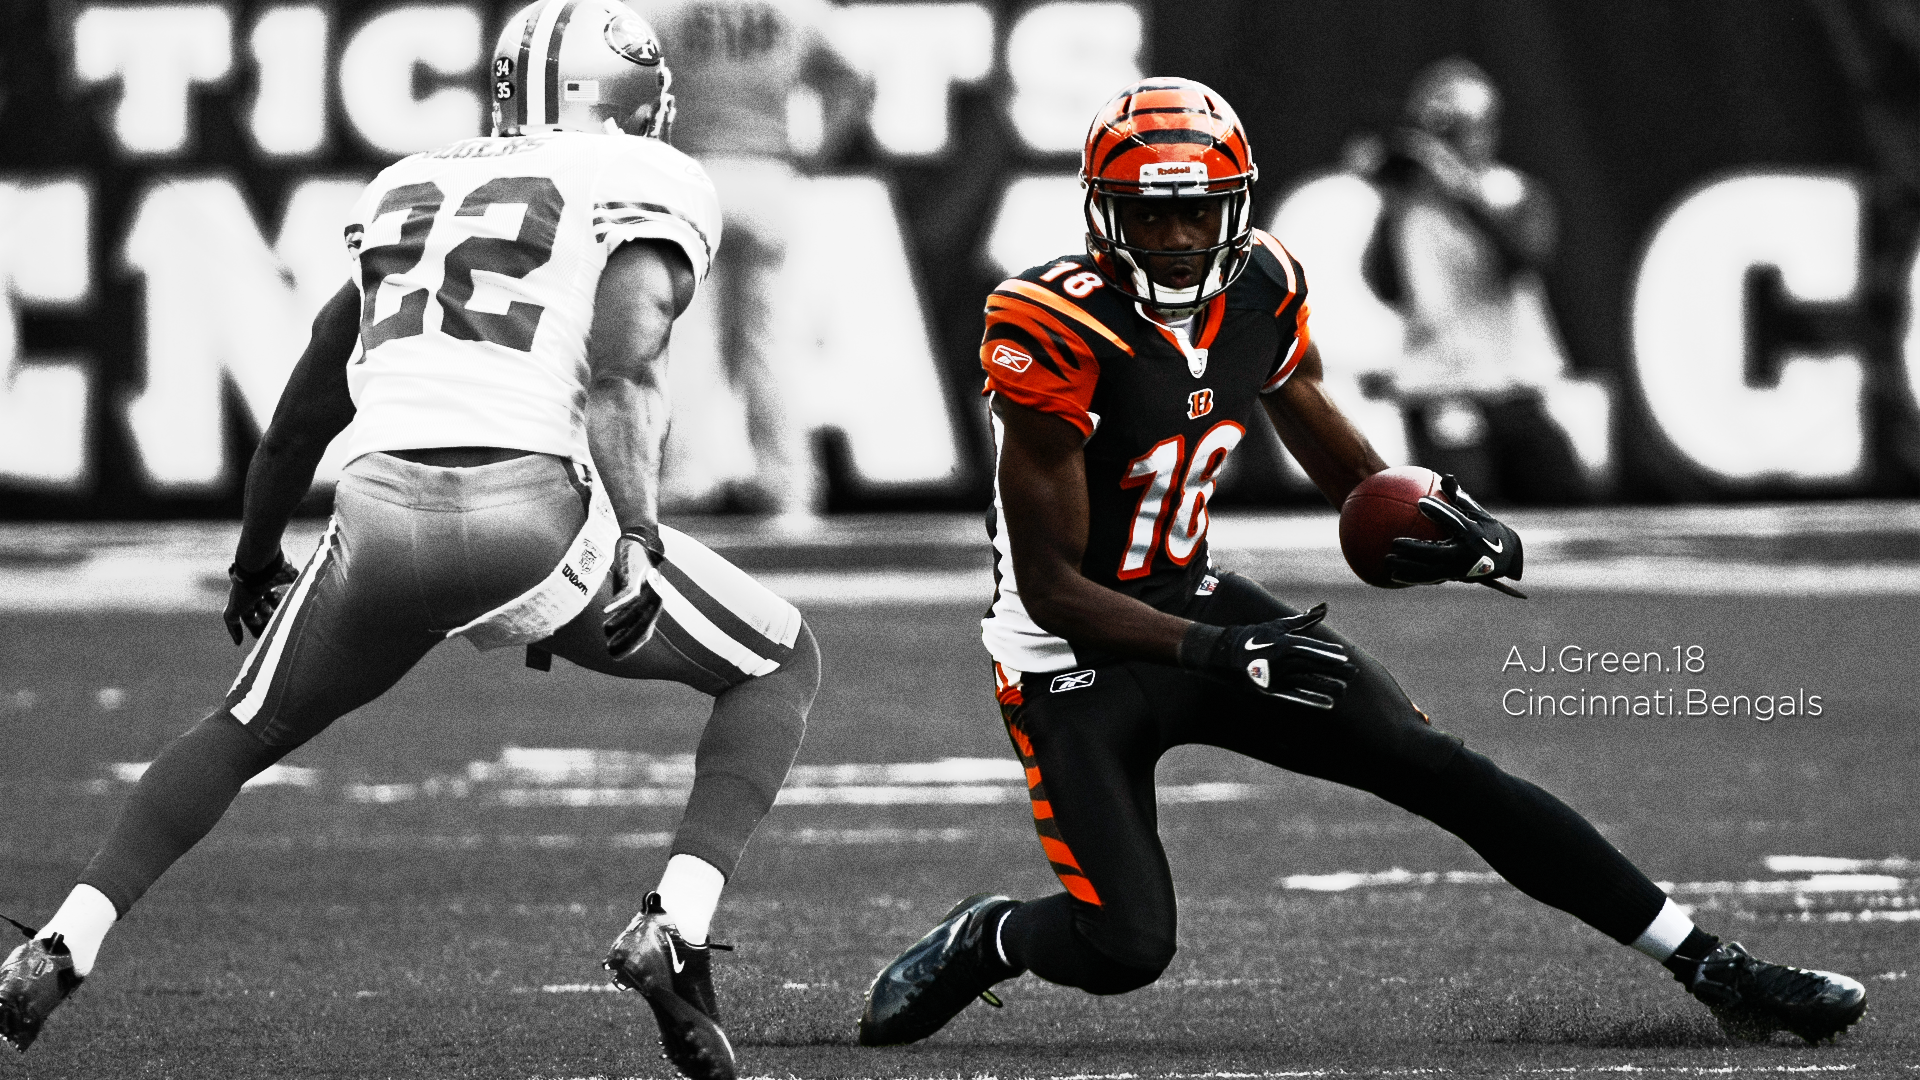 CINCINNATI BENGALS nfl football y wallpaper 1920x1080 157676 1920x1080